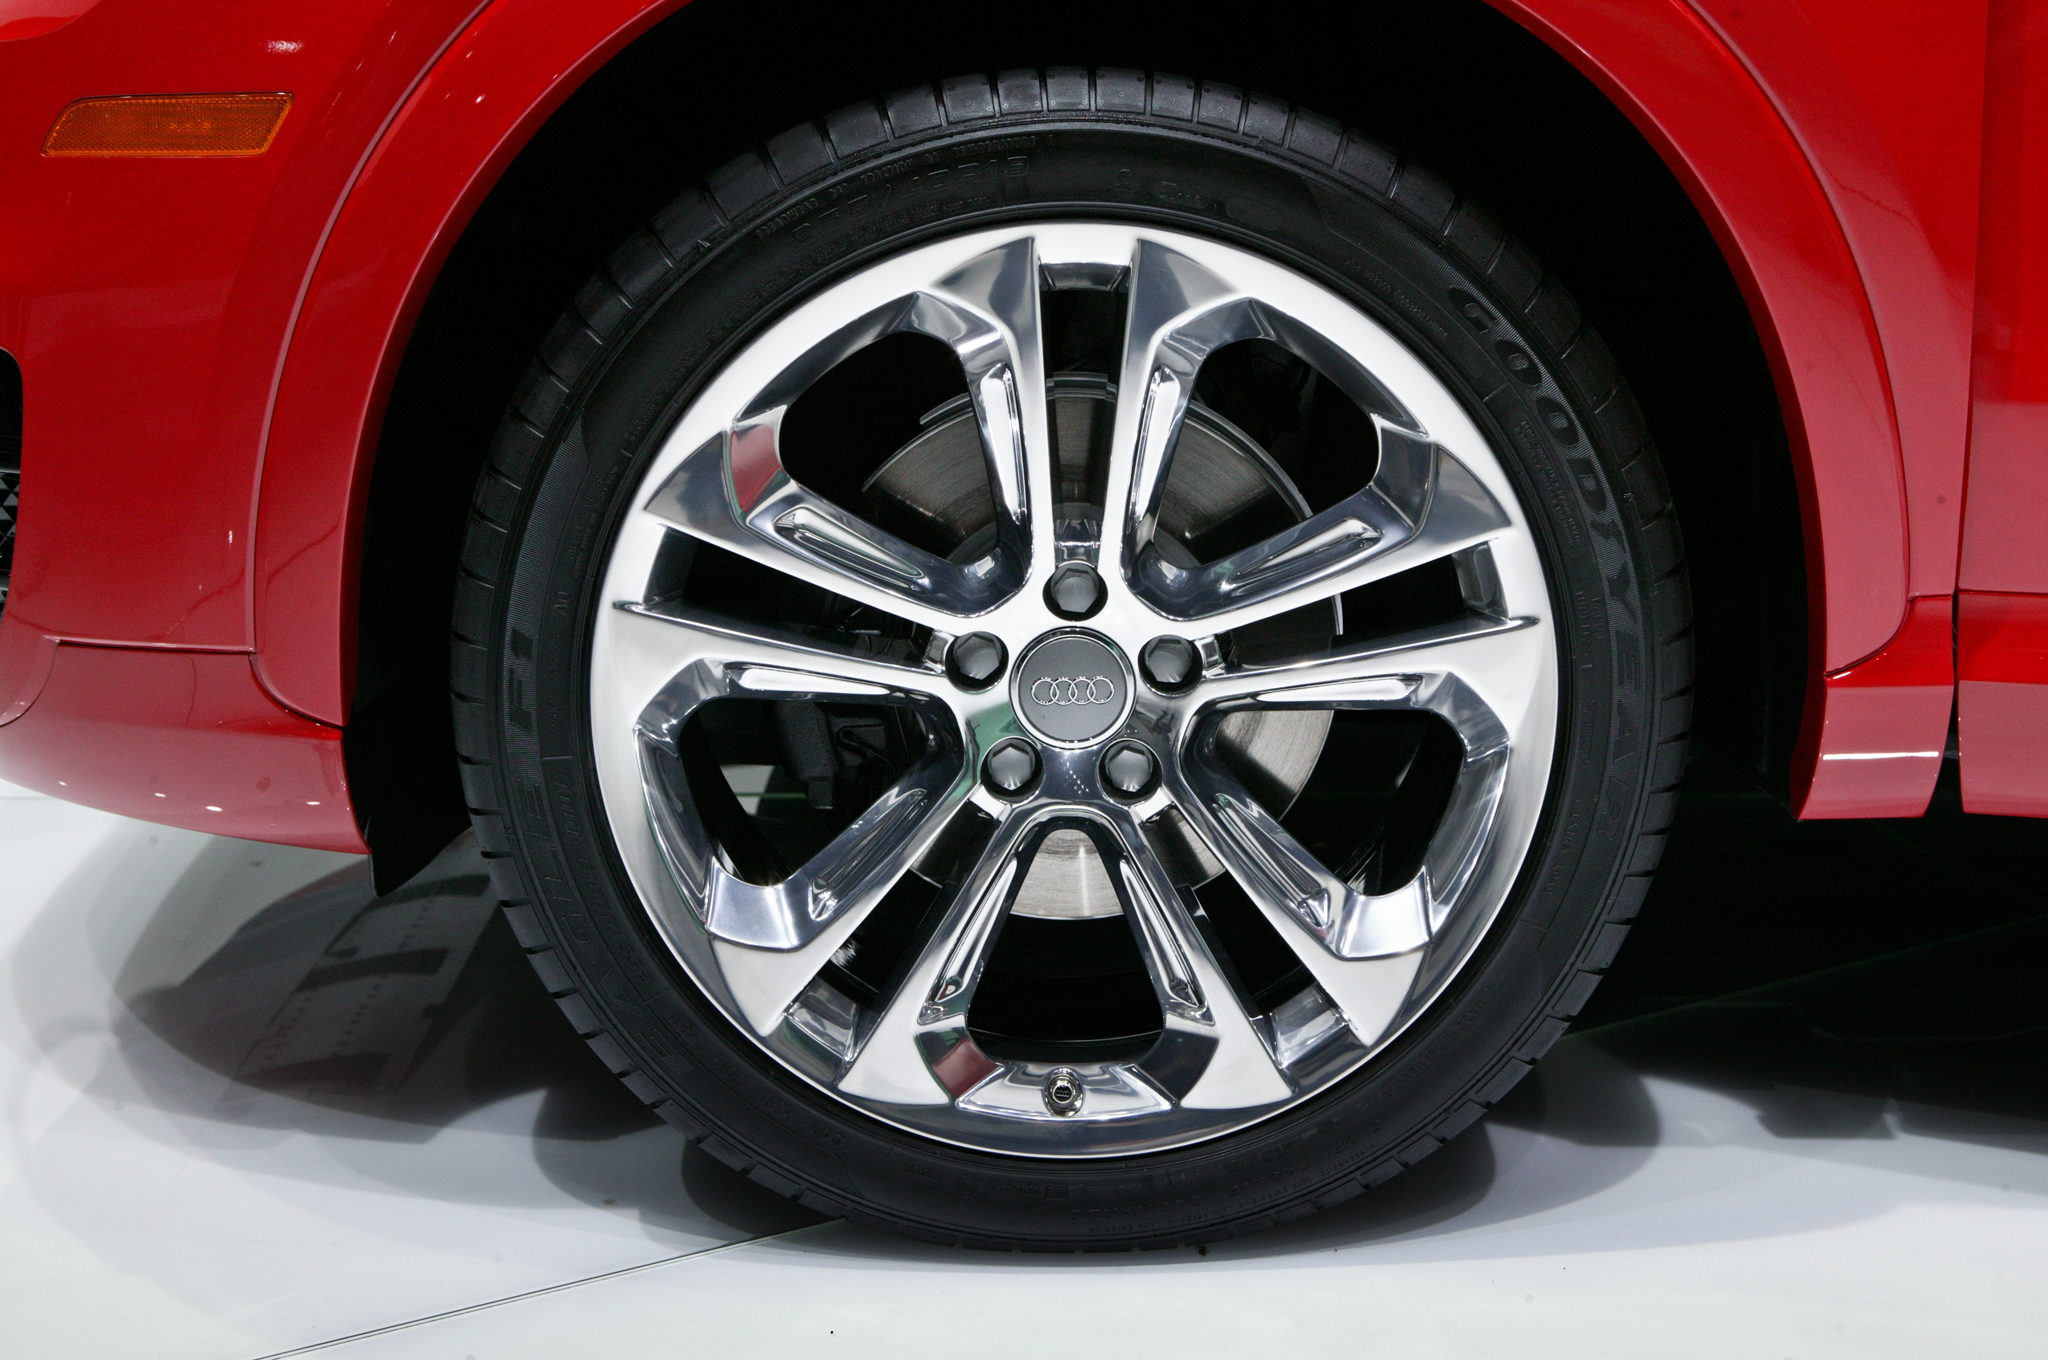 2015 Audi Q3 Front Wheel (Photo 9 of 21)